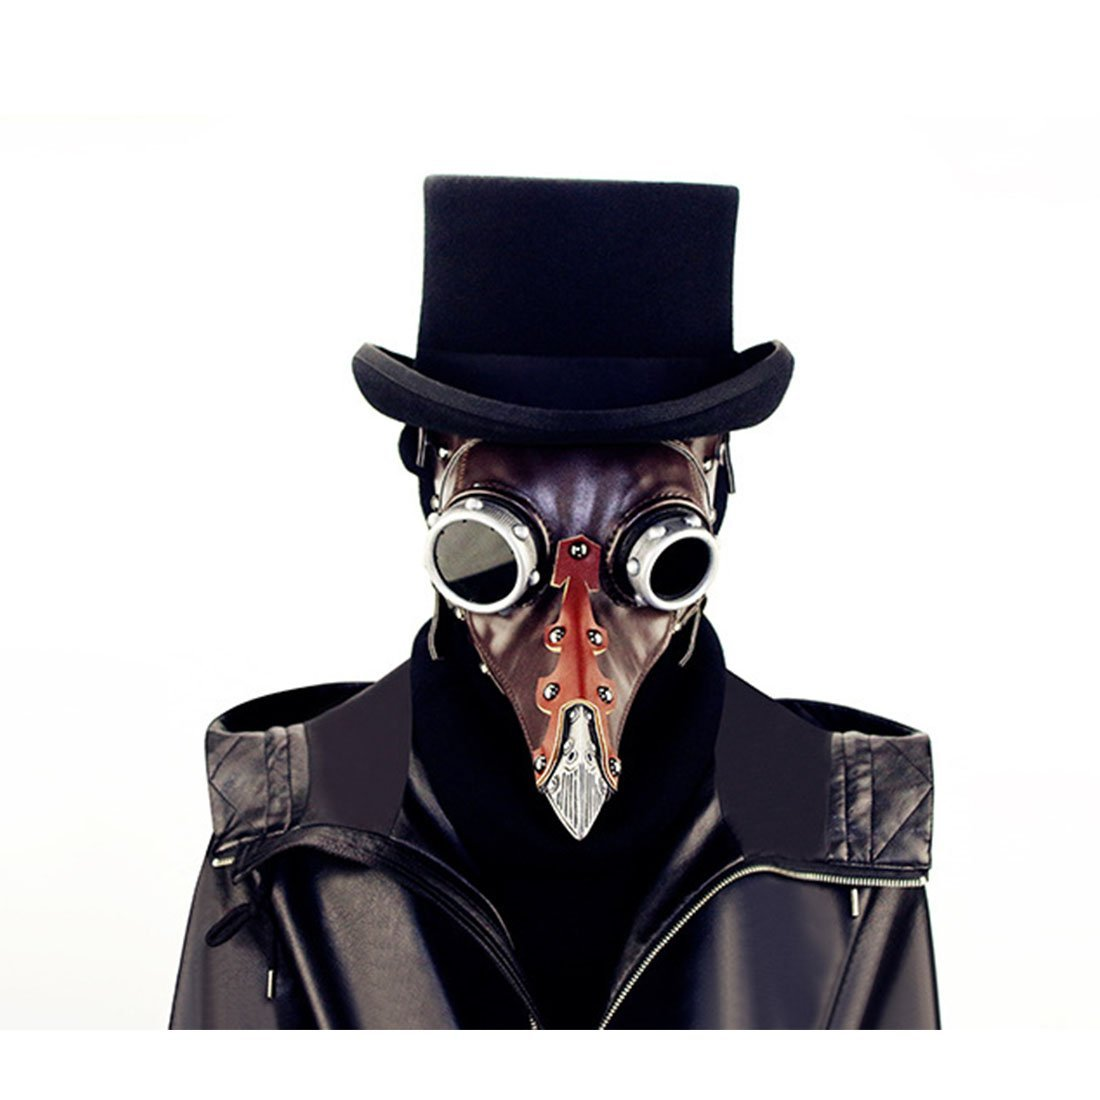 Hungrybubble Leder Steampunk Full Face Face Face Pest Arzt Vogel Maske Long & Short Nase Schnabel Faux Cosplay Halloween Weihnachten Kostüm Requisiten (Farbe : Style1) 30ad51